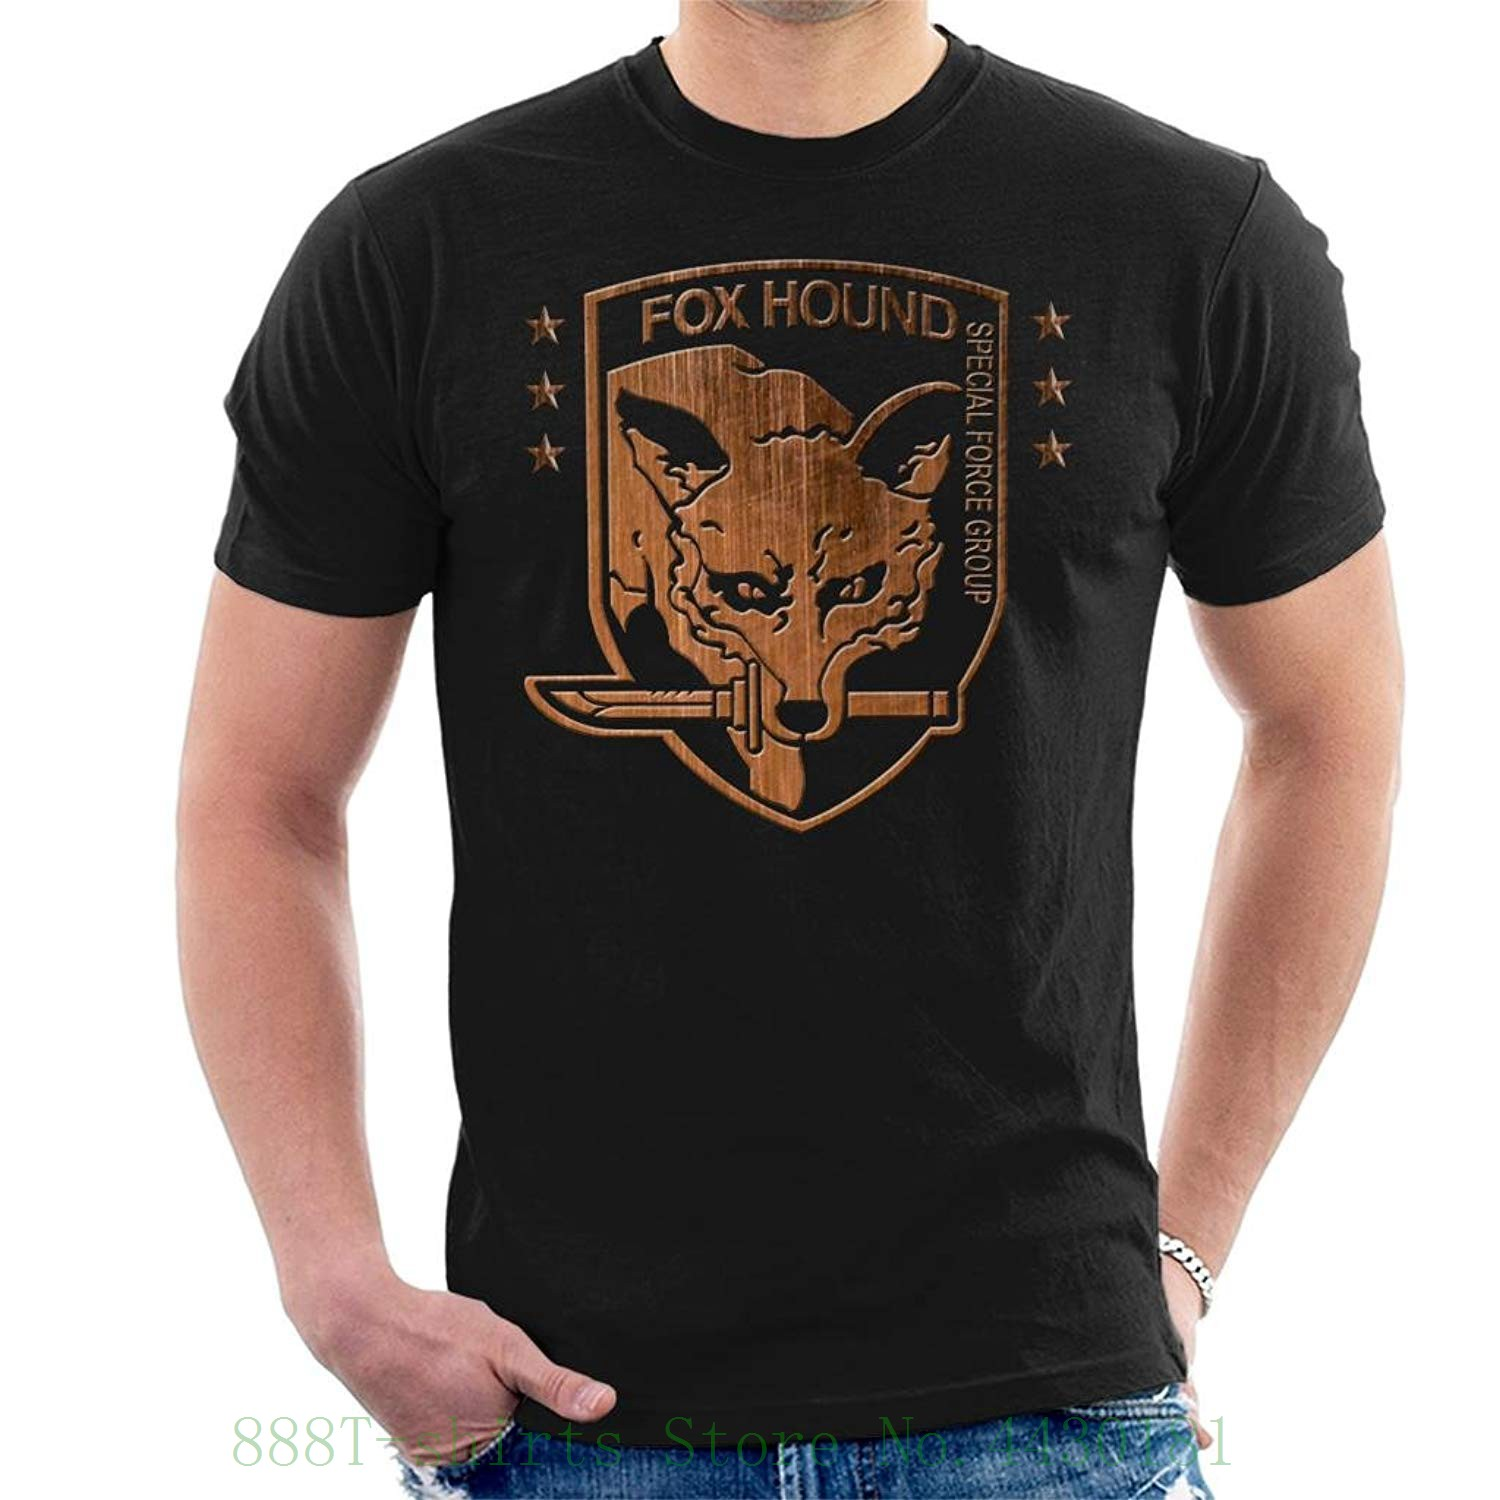 Foxhound Special Forces Group Metal Gear Solid Men's T Shirt Men's Fashion Black Cotton